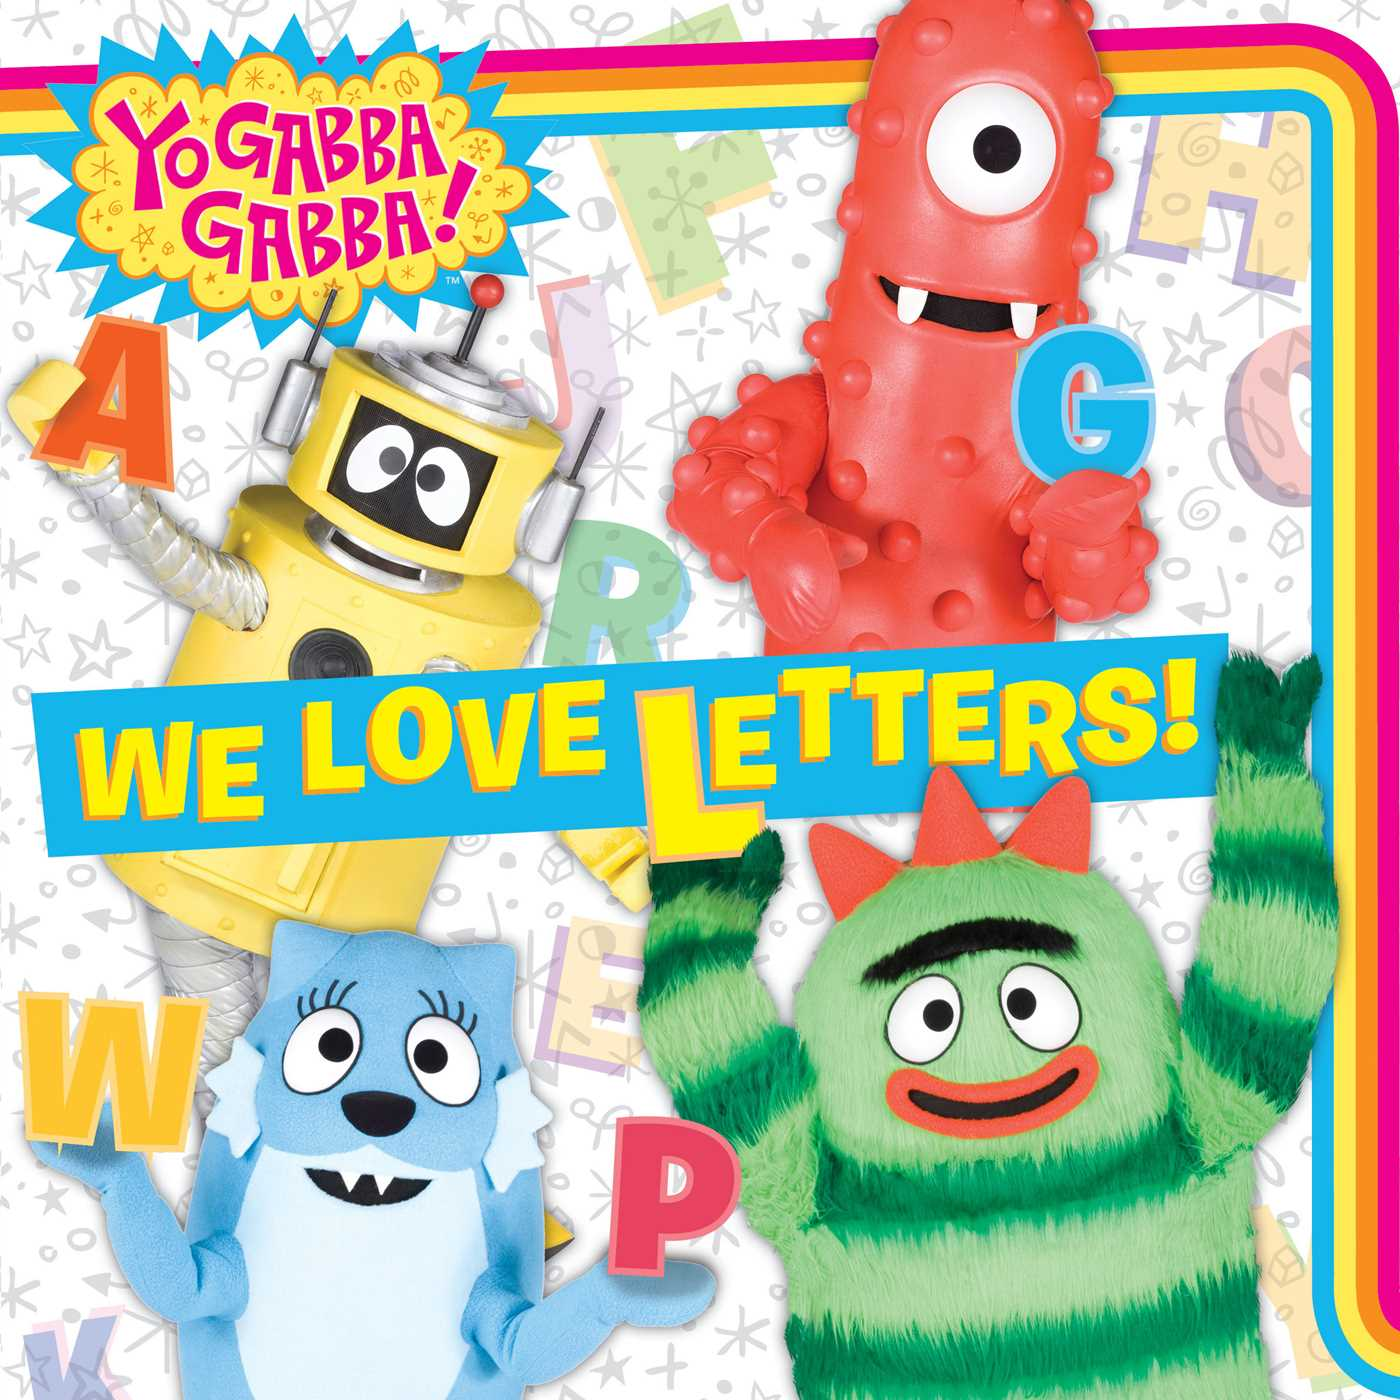 We Love Letters